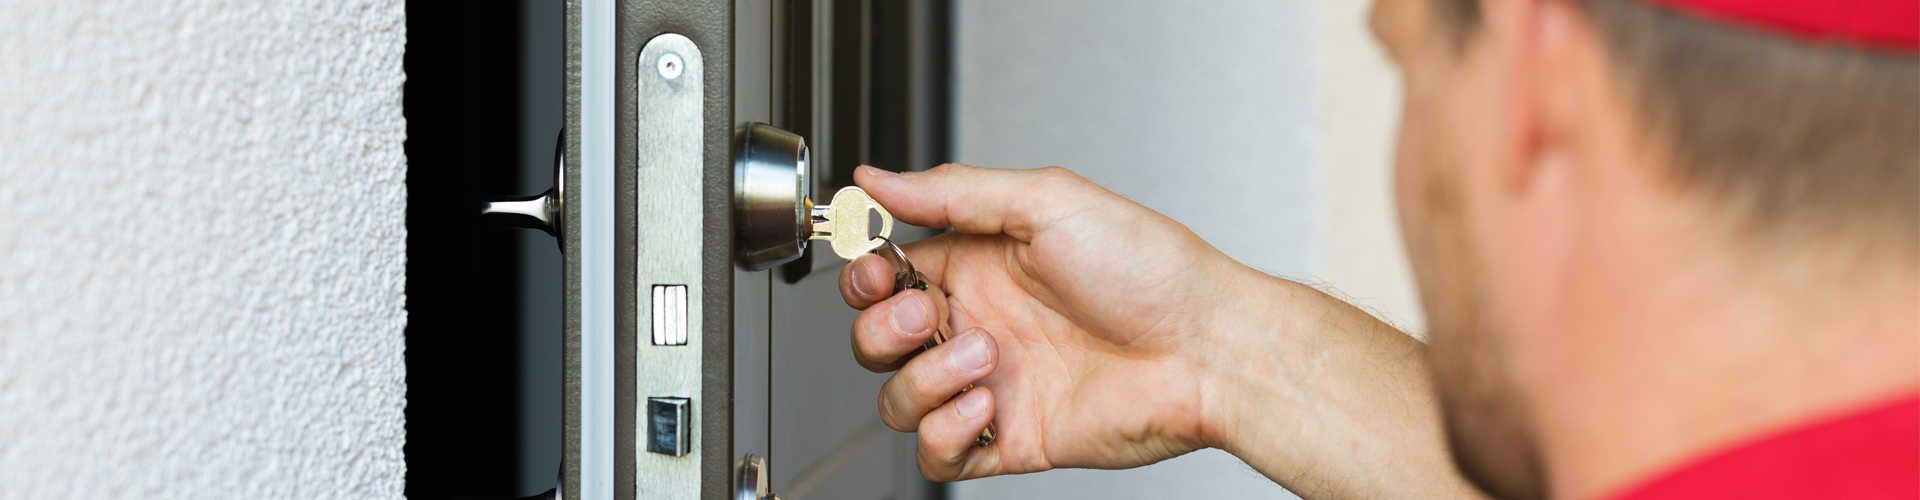 Locksmith cost guide 2019